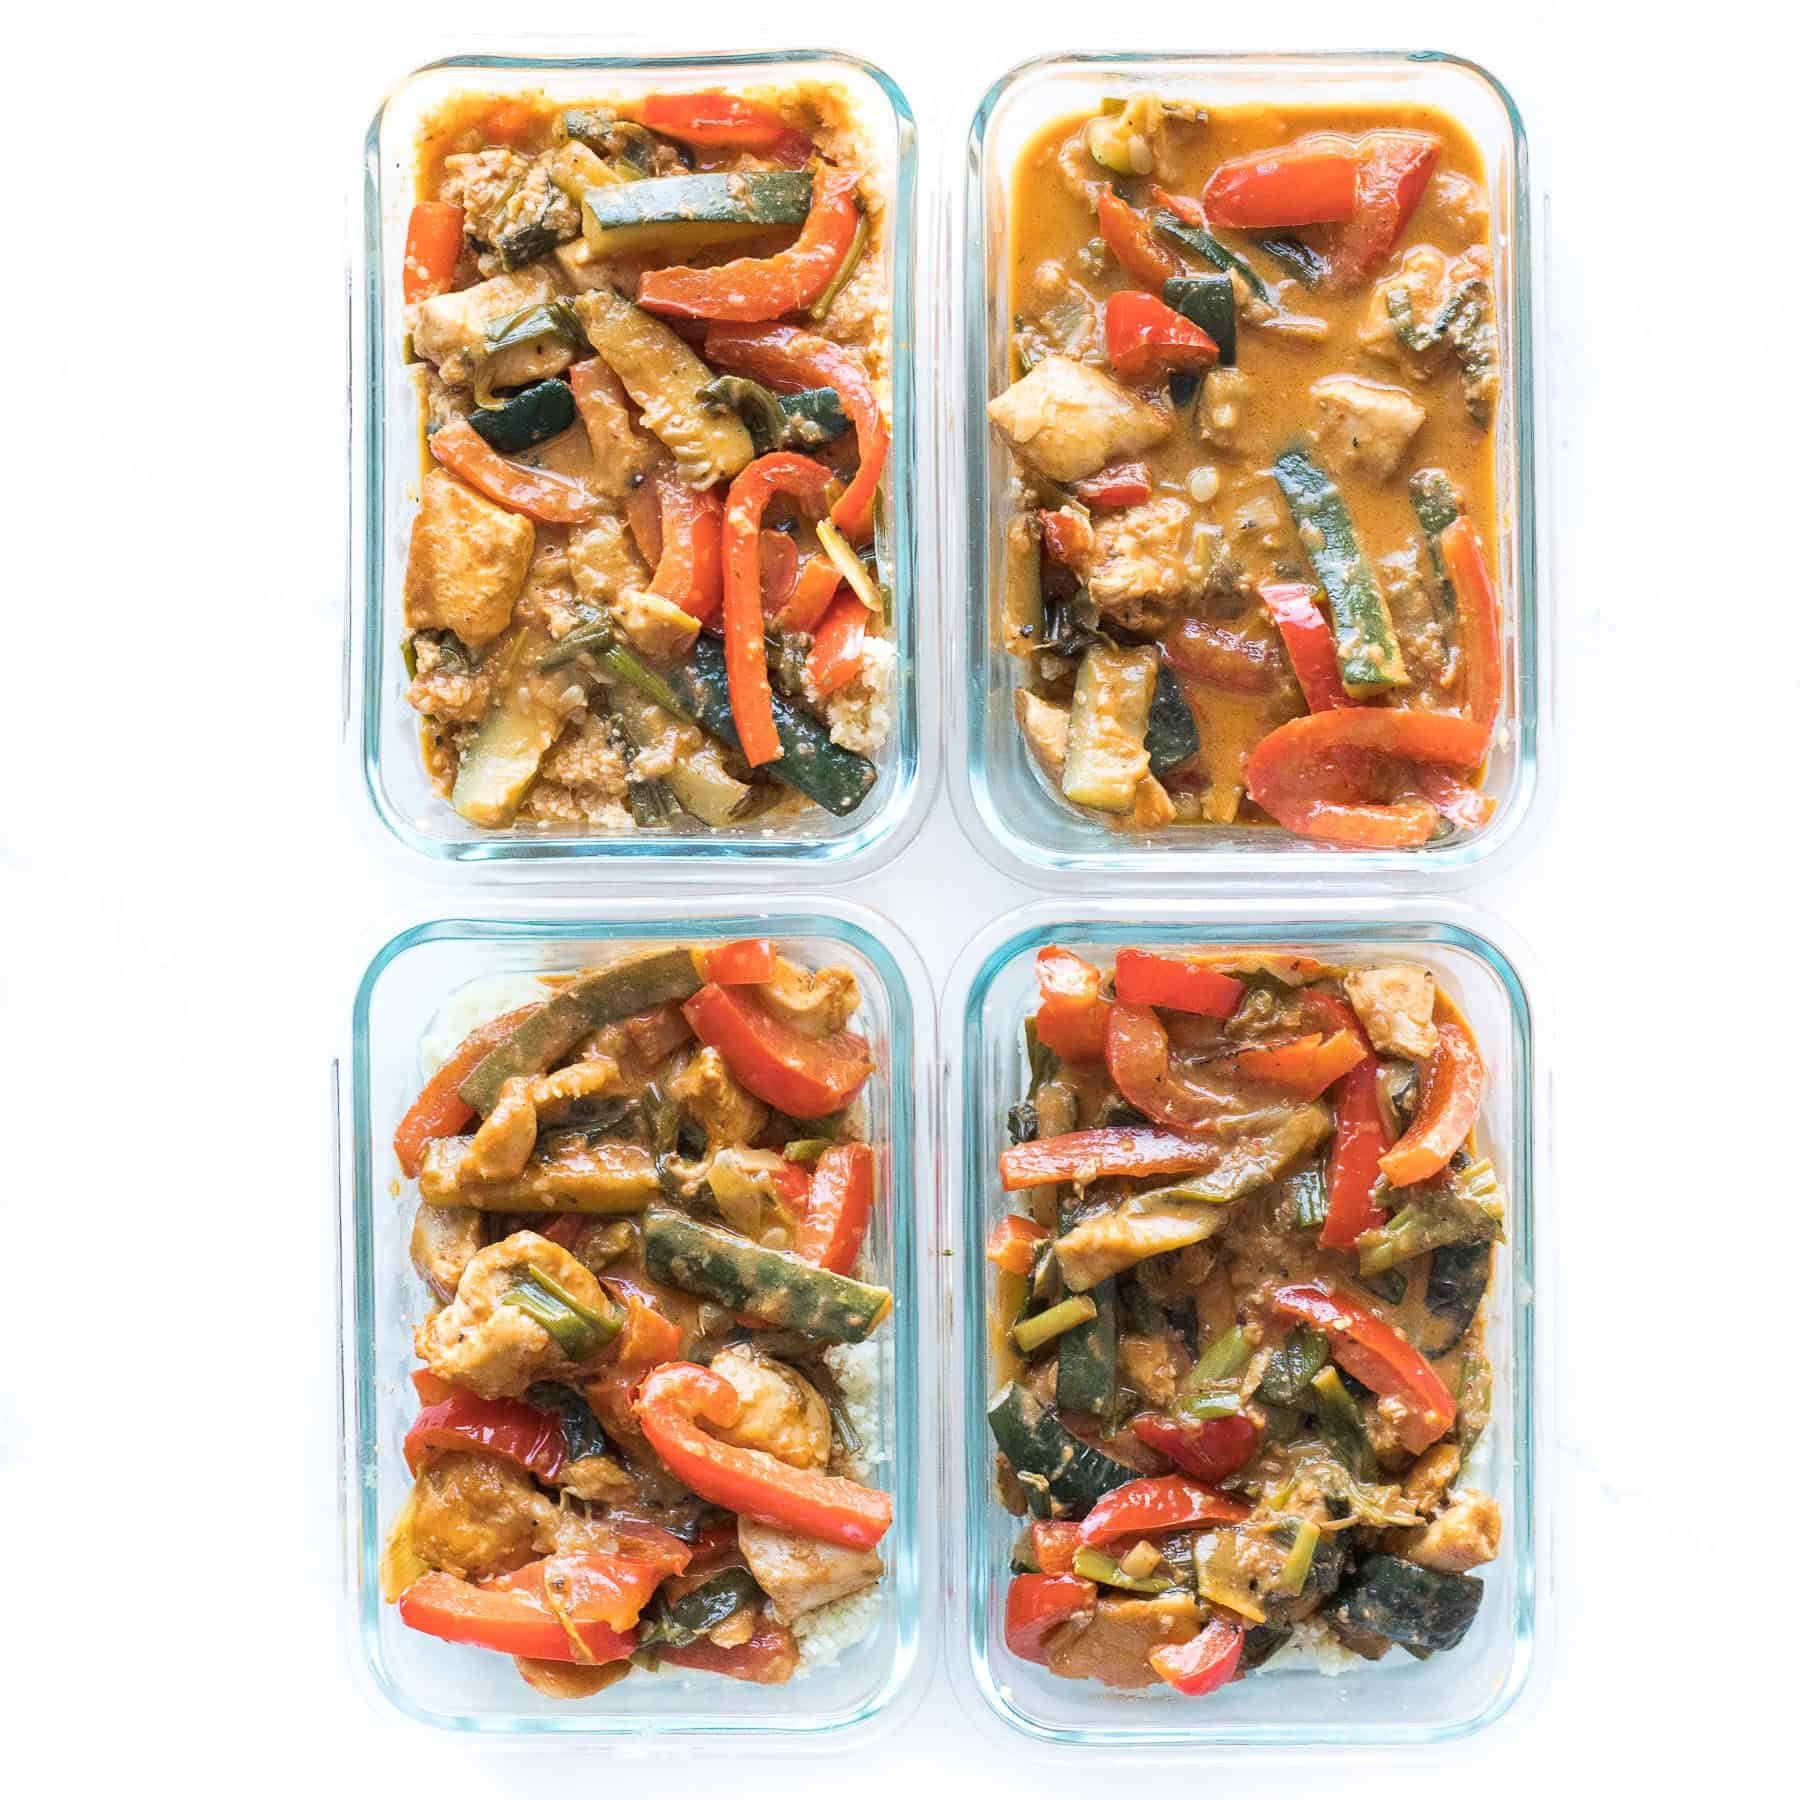 thai curry in meal prep containers